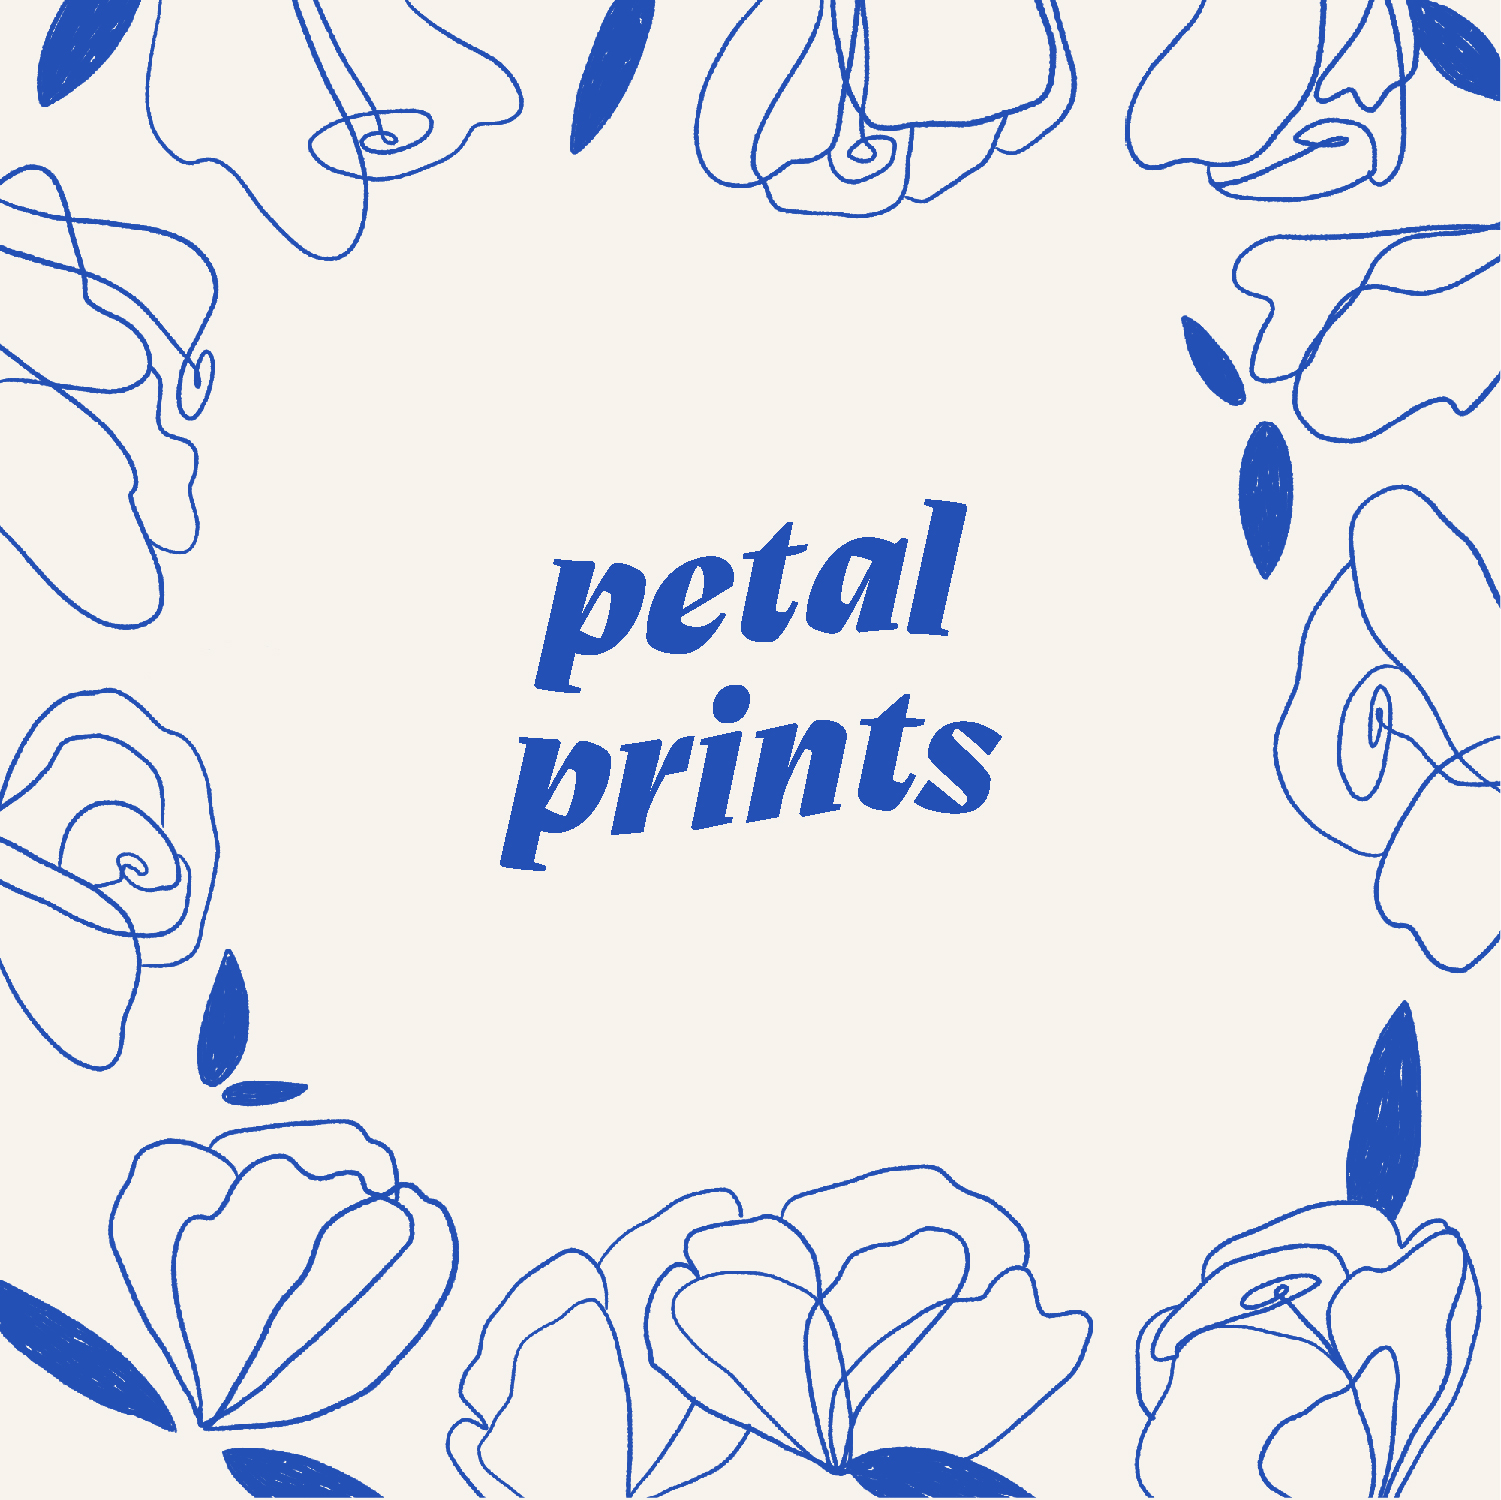 Petal Prints   Branding - Petal Prints is a fictitious company that I have created and designed a visual identity for. I wanted it to feel playful (hence the wavy type for the logo) and also clean and simple. I incorporated floral illustrations that are imperfect because I think that's more interesting! I love adding little bits of texture to make it seem drawn by hand (and it is! just digitally).